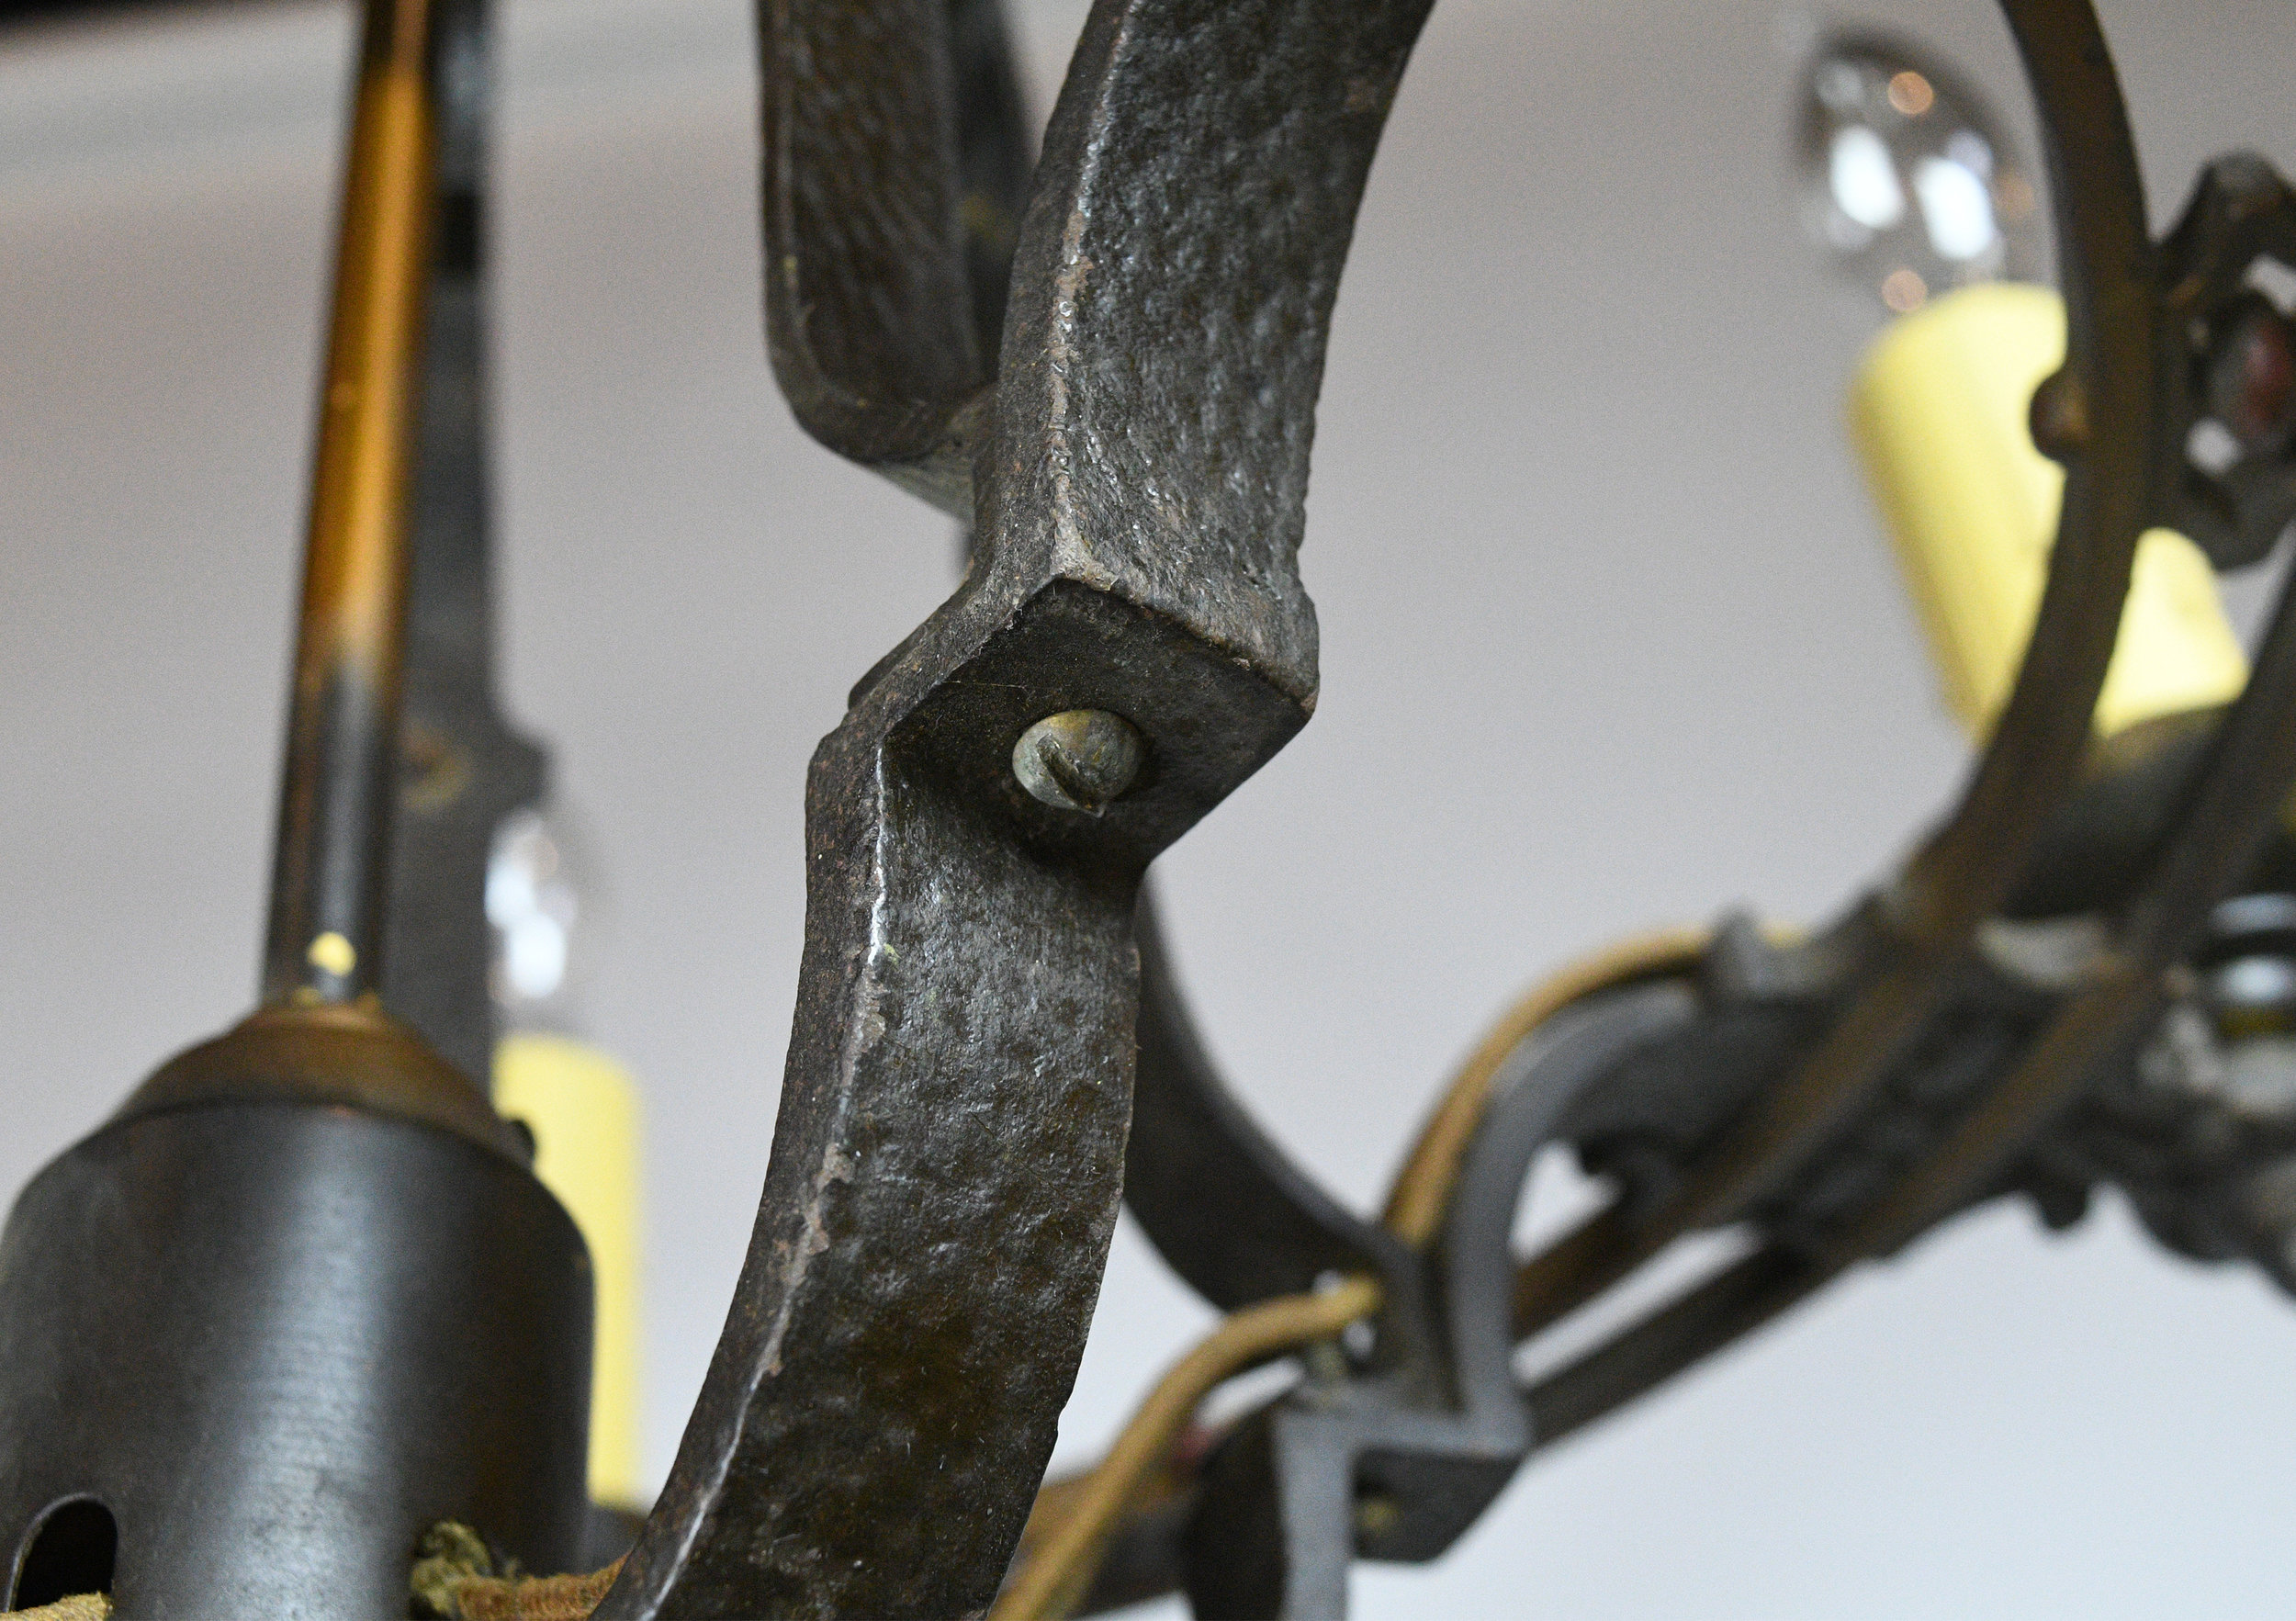 47546-5-candle-hammered-iron-polychrome-chand-detail-24.jpg